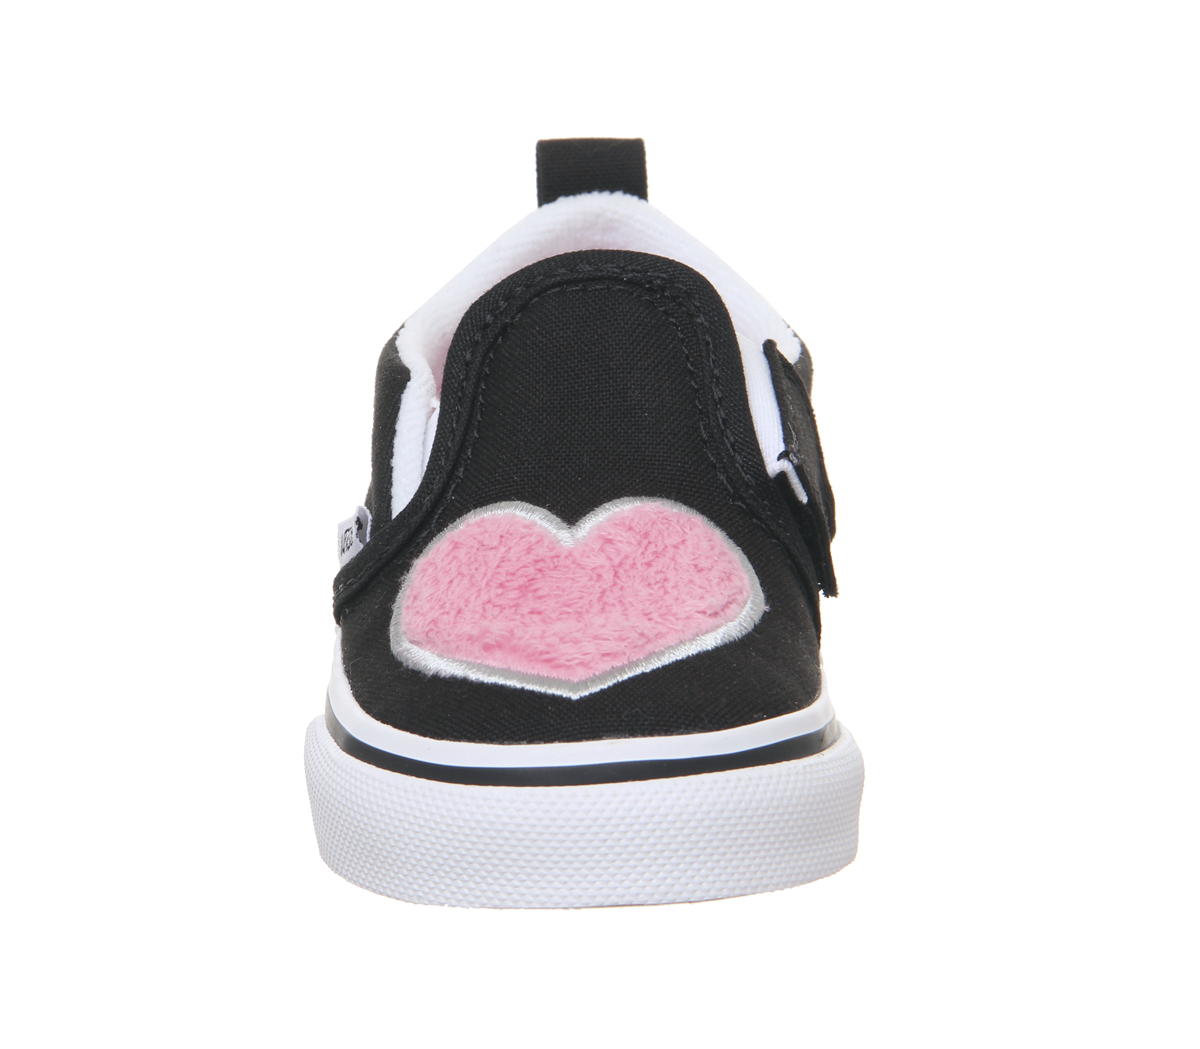 fc3417da7d8f Sentinel Kids Vans Classic Slip On Toddlers Trainers Strawberry Pink Black  Fur Heart Kids